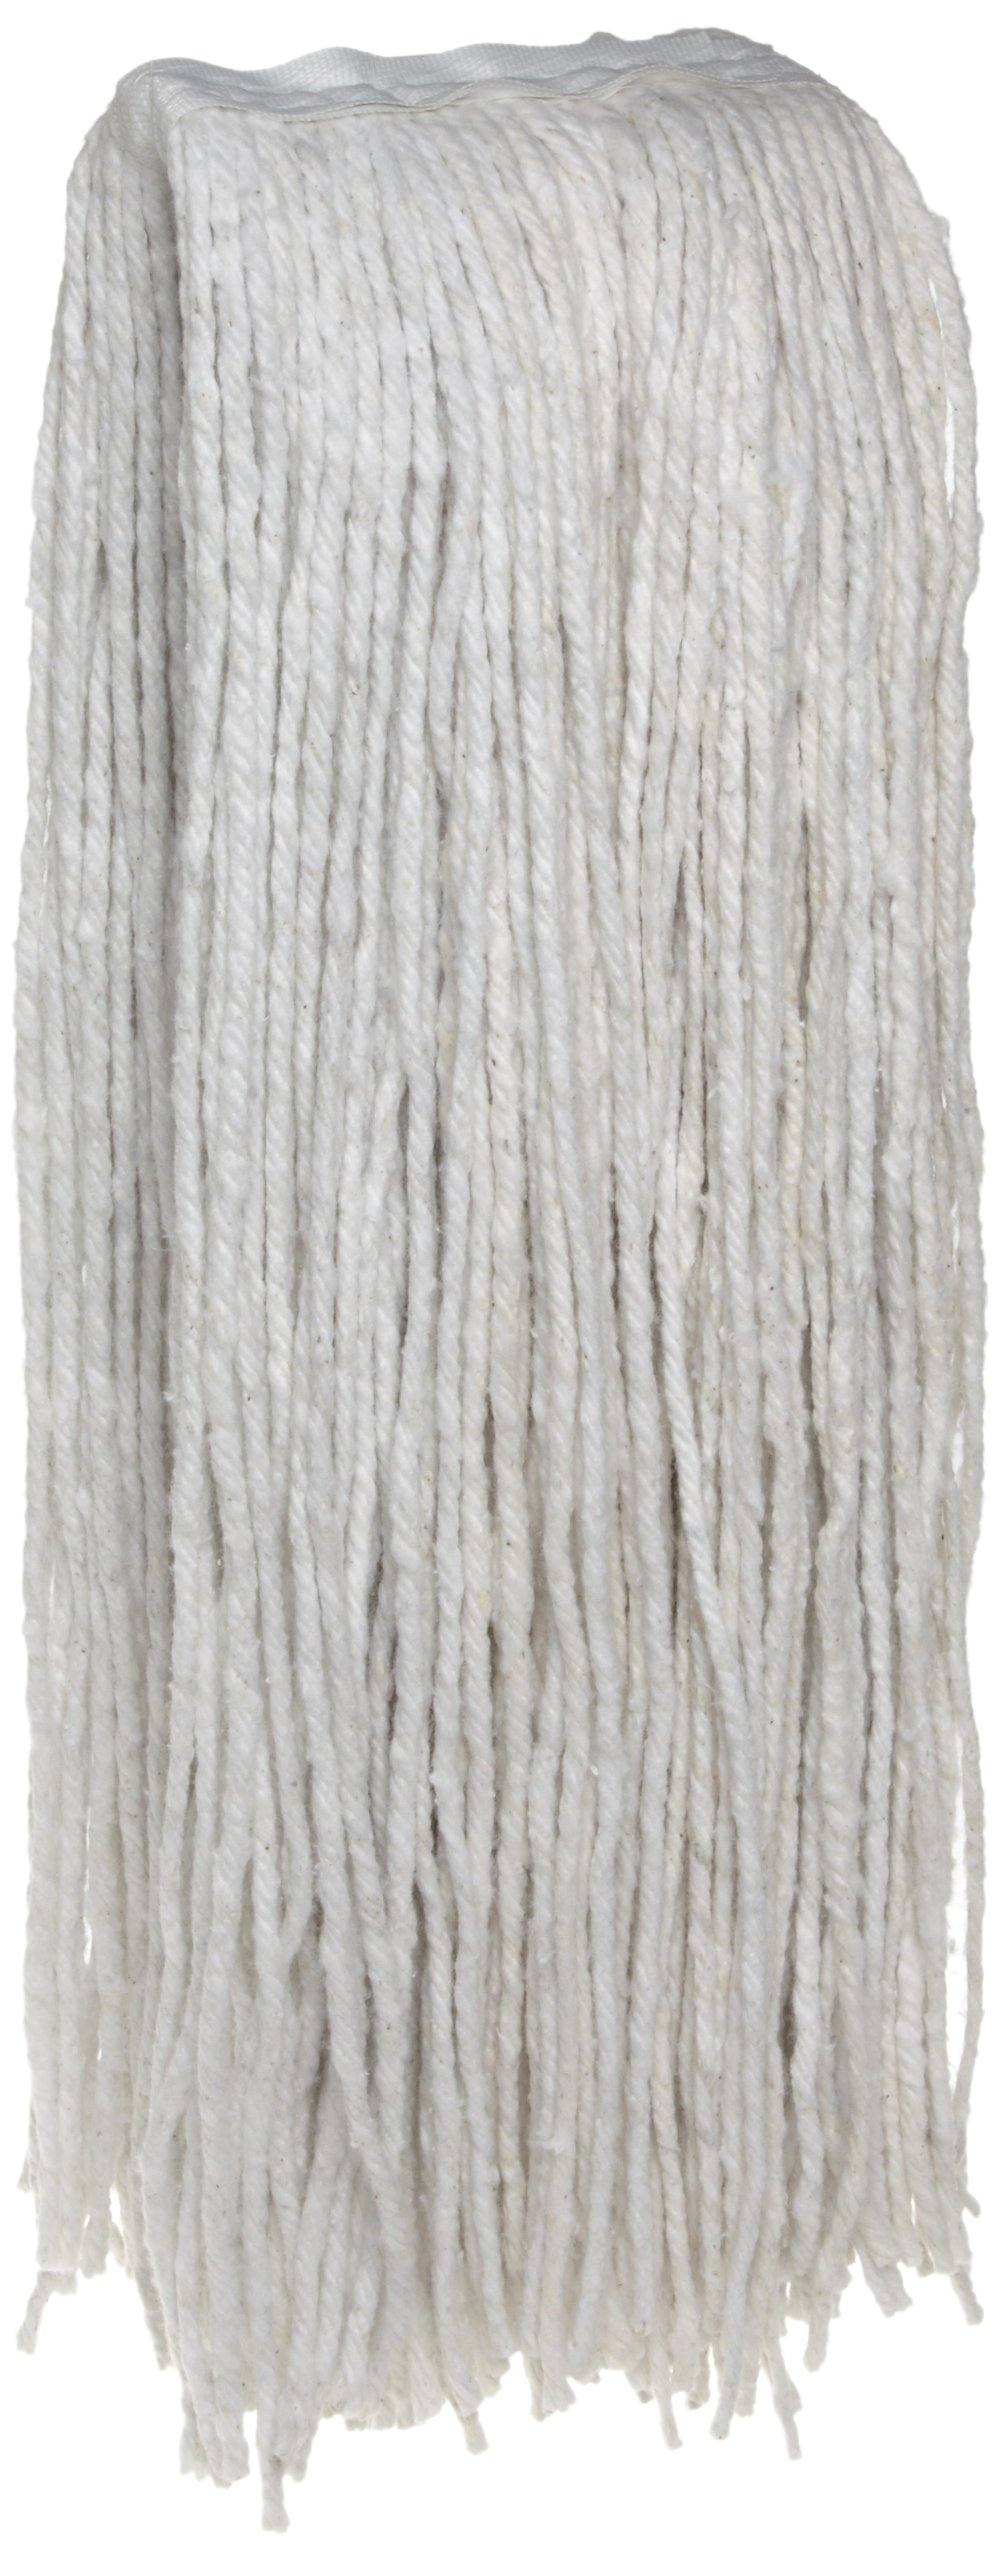 Zephyr 24001 Blendup 4-Ply Blended Natural and Synthetic Fibers 12oz Cut End Wet Mop Head (Pack of 12)